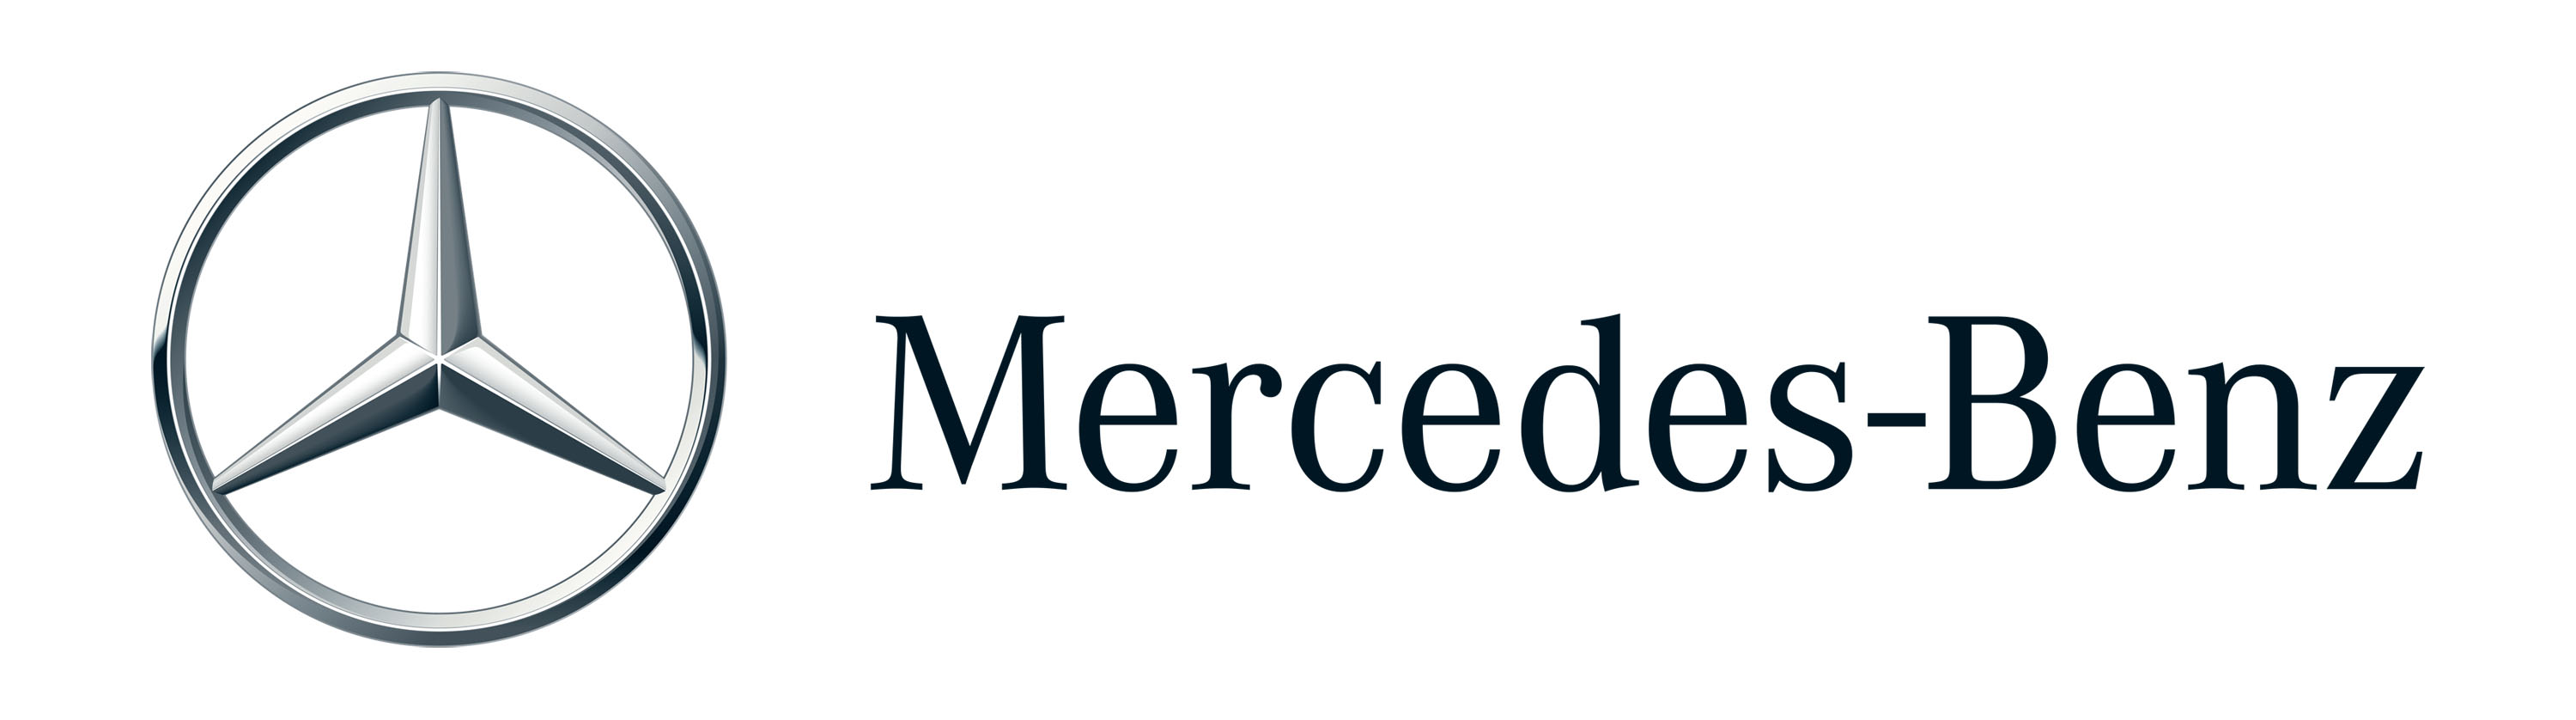 Mercedes benz credit card payment login address for Mercedes benz credit